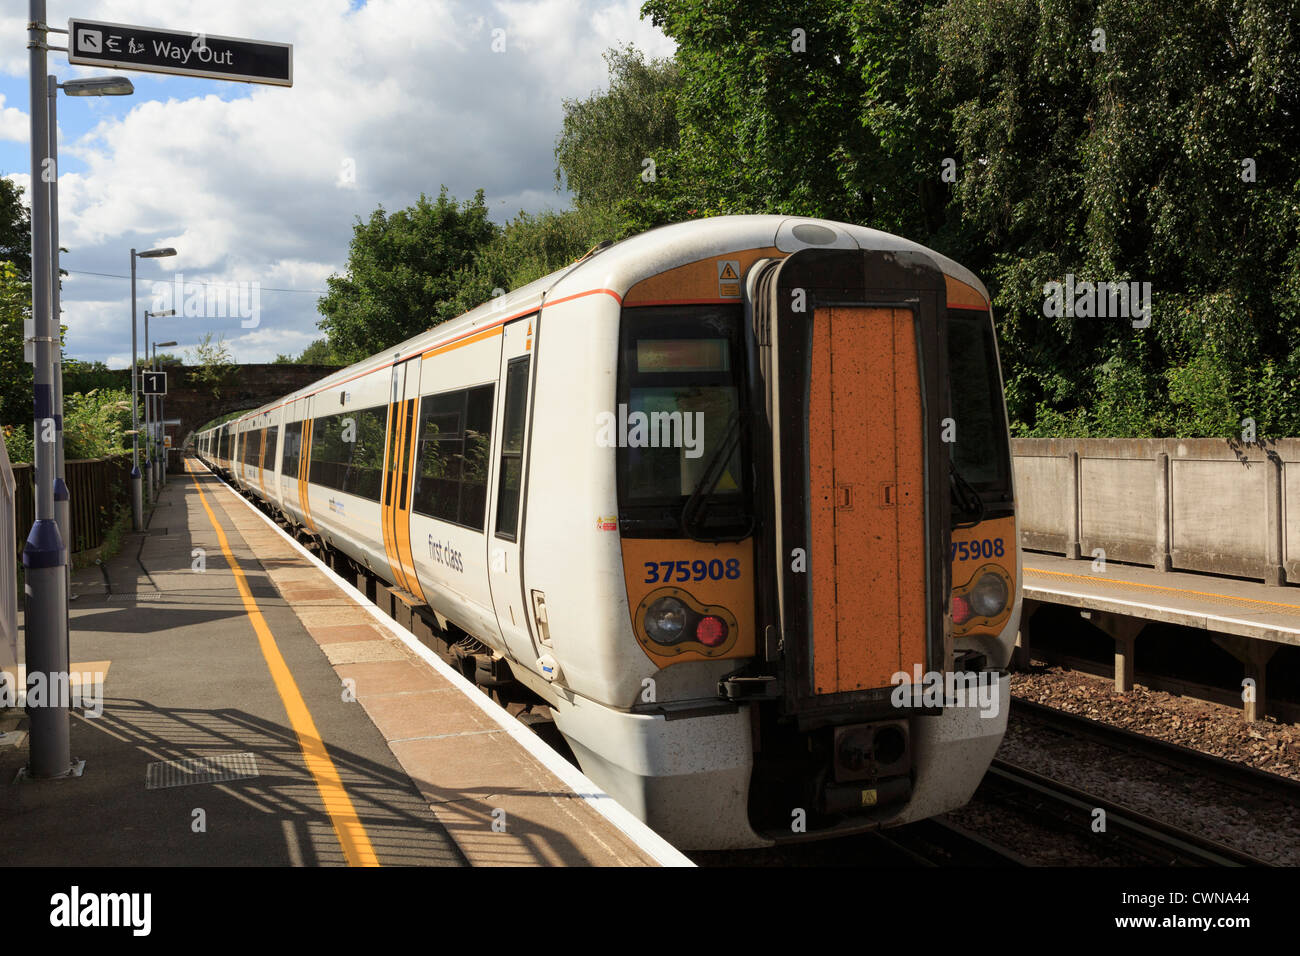 Rear of a London-bound SouthEastern train departing from platform in rural railway station of Pluckley Kent England - Stock Image